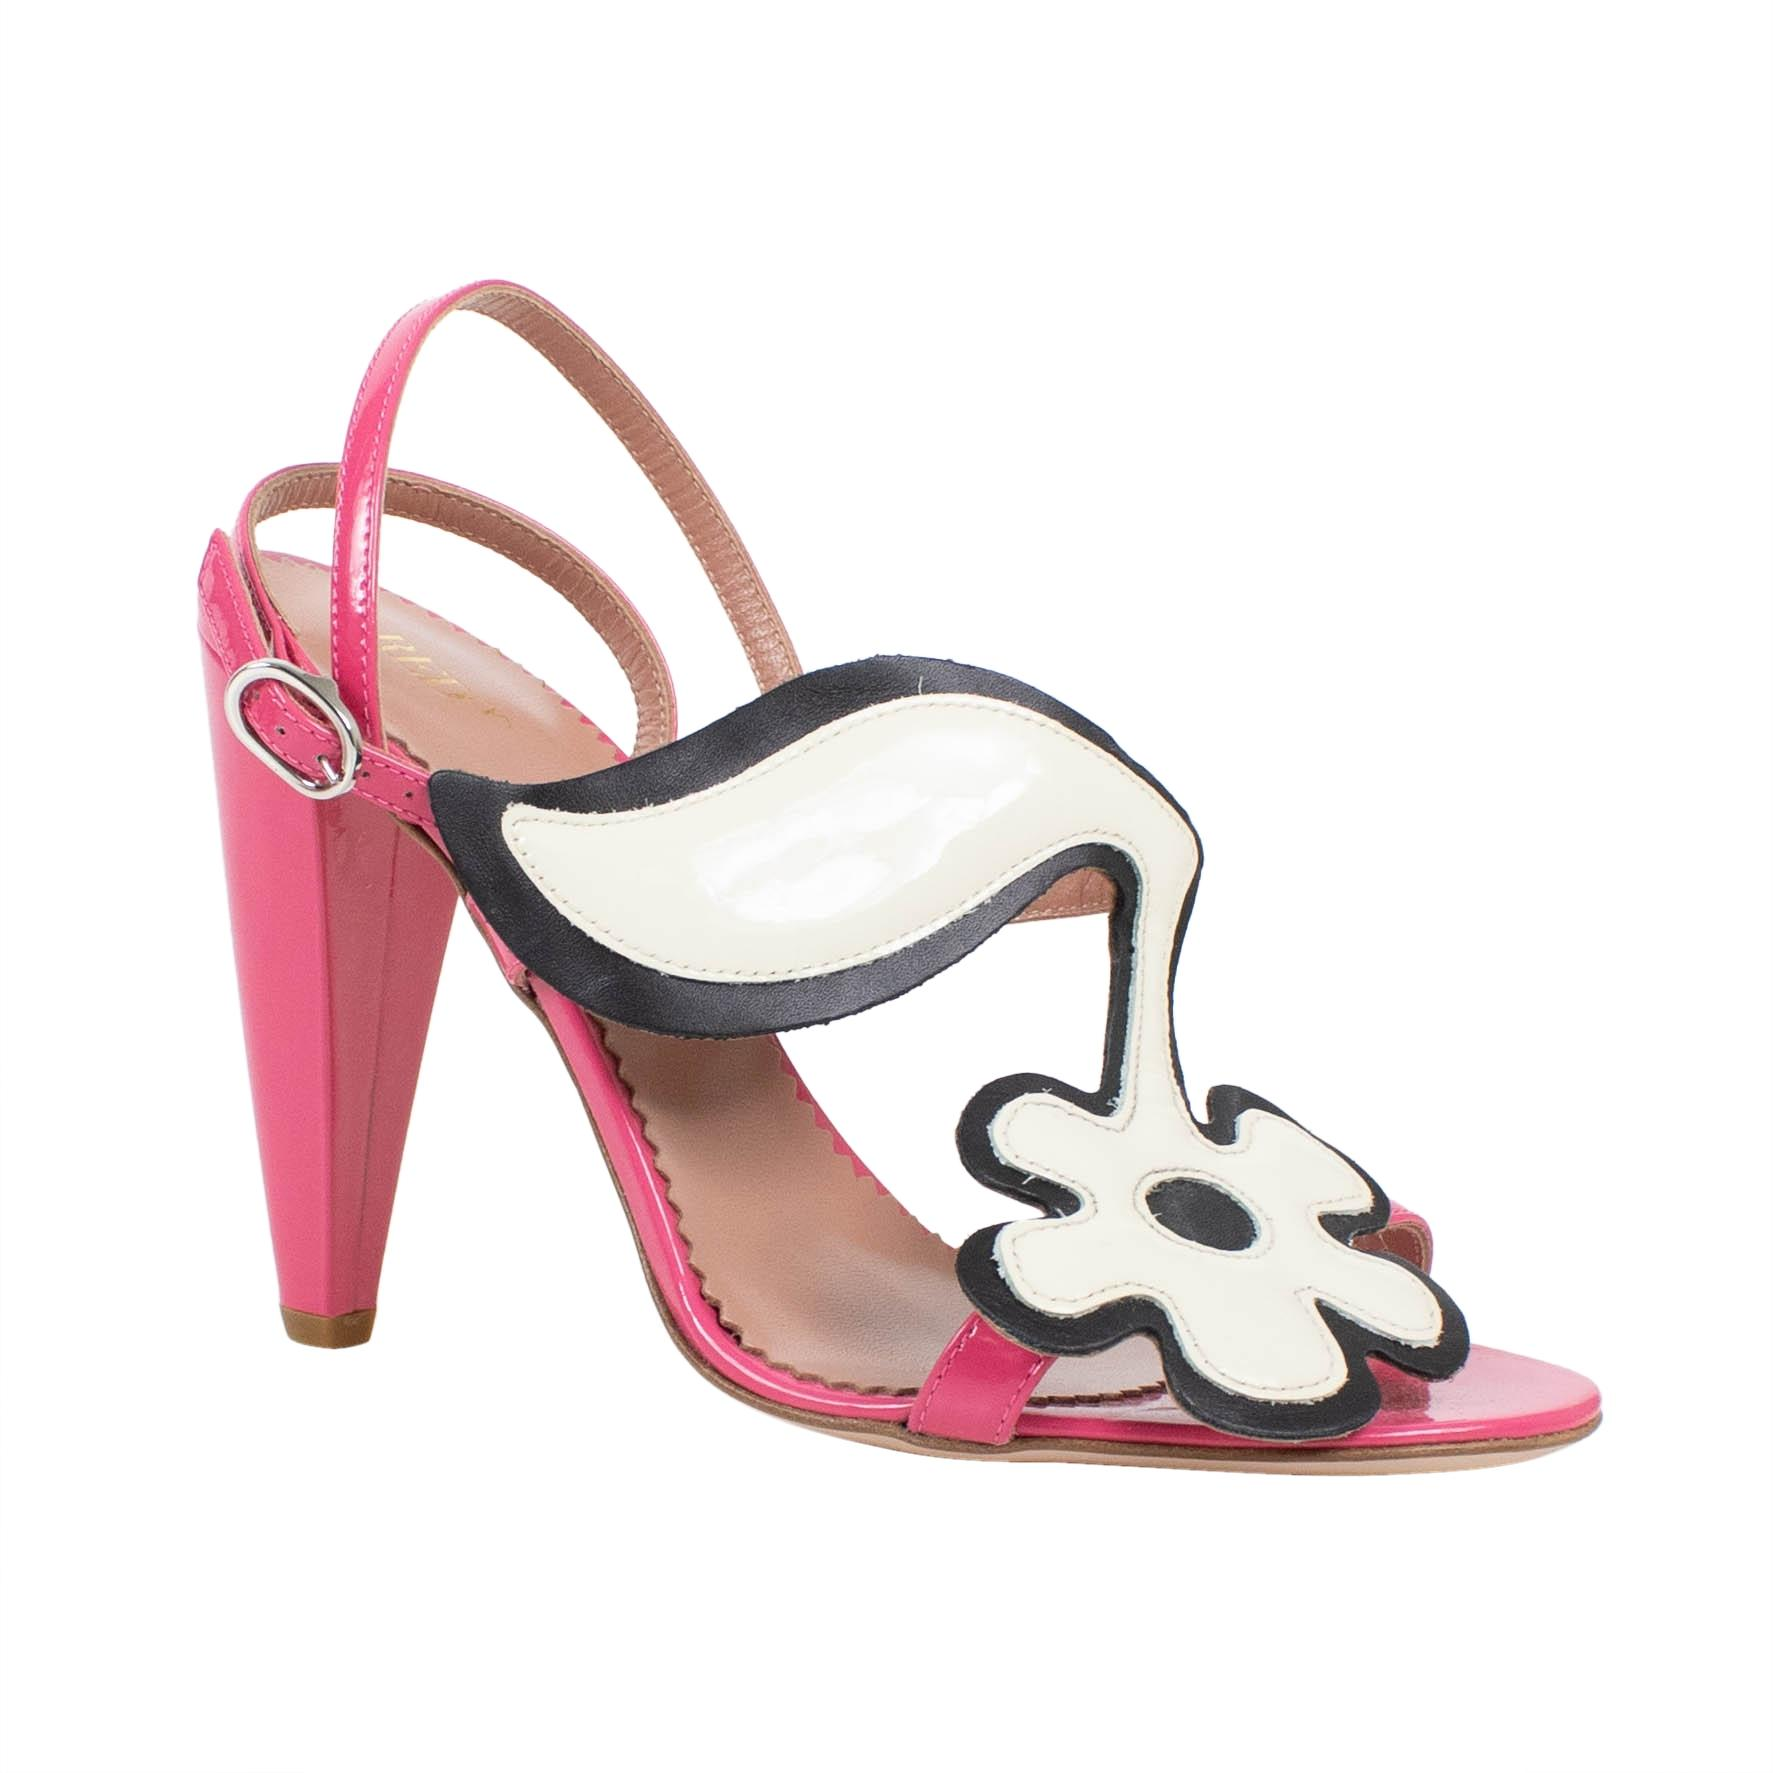 c64410fa7 RED Valentino Valentino Valentino Pink Patent Leather Sandals Pumps Size US  7 Regular (M